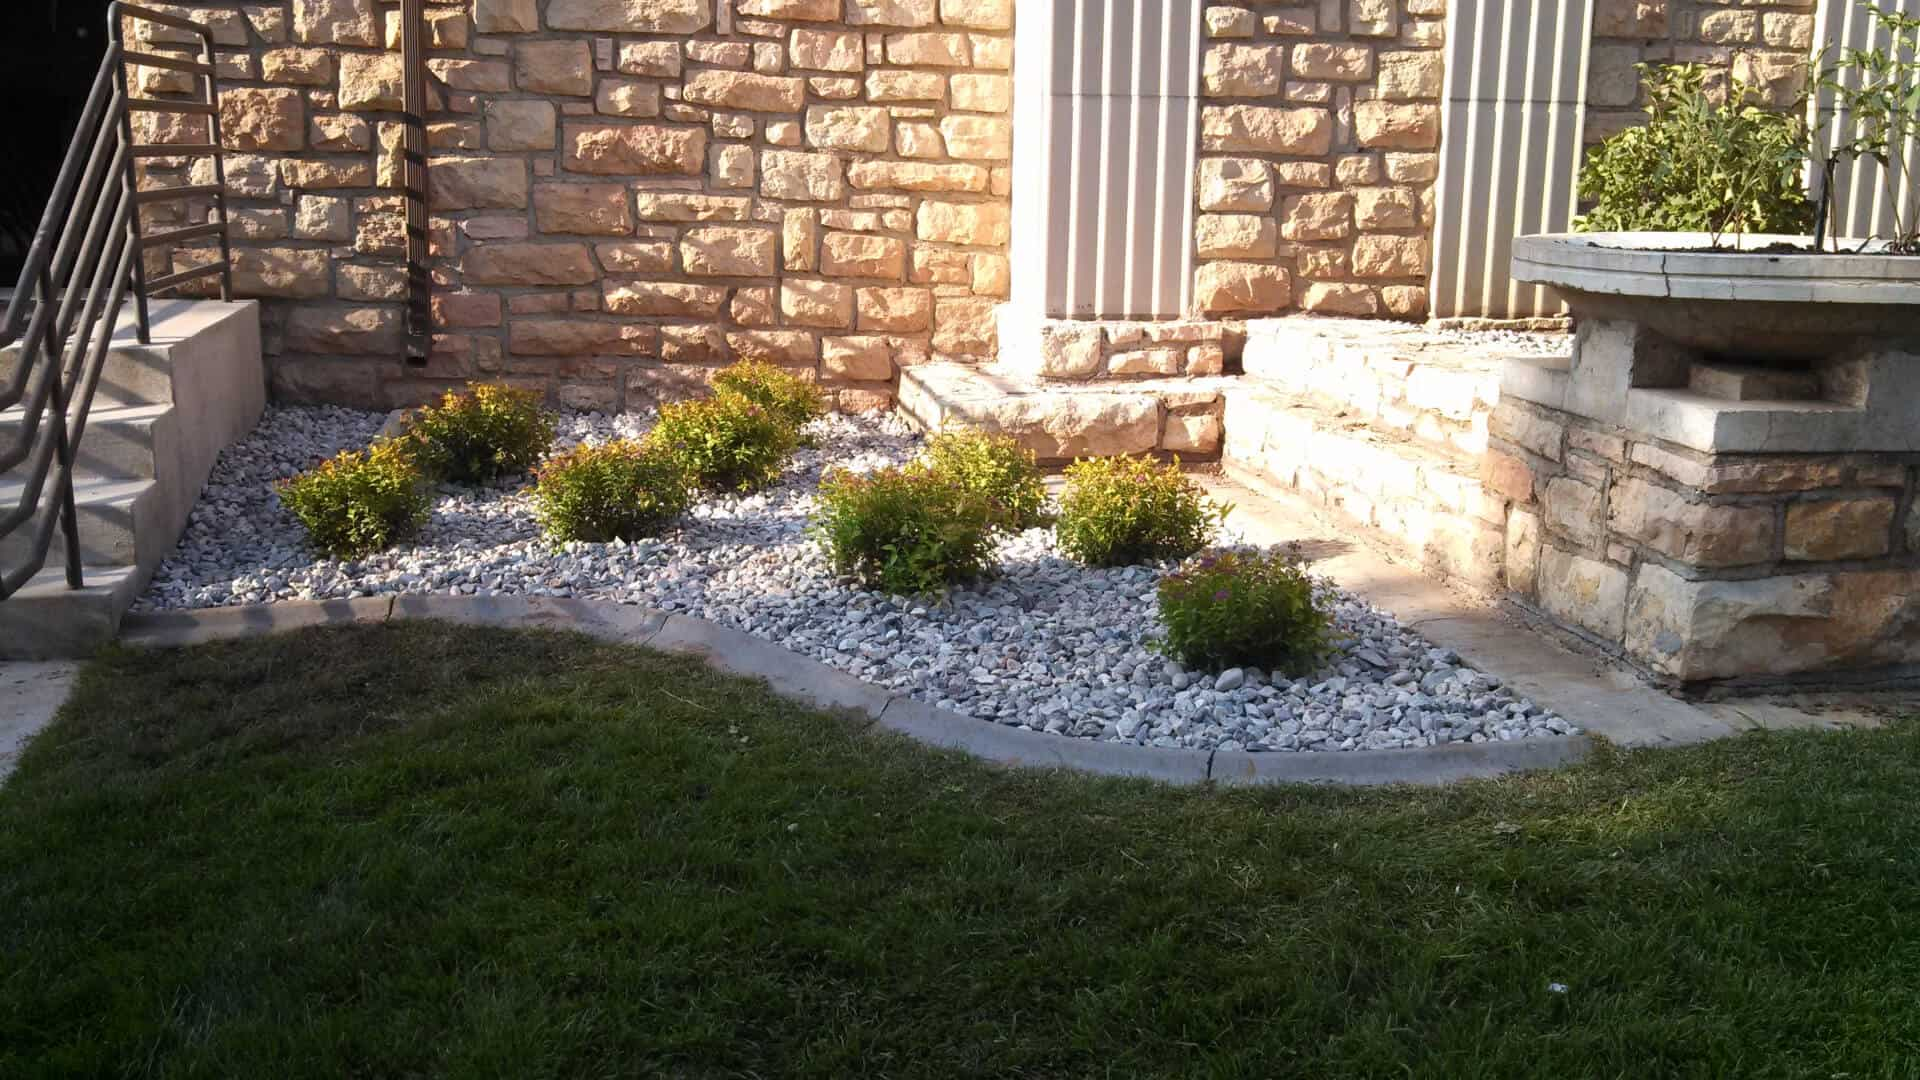 Commercial Landscaping in Laramie, WY